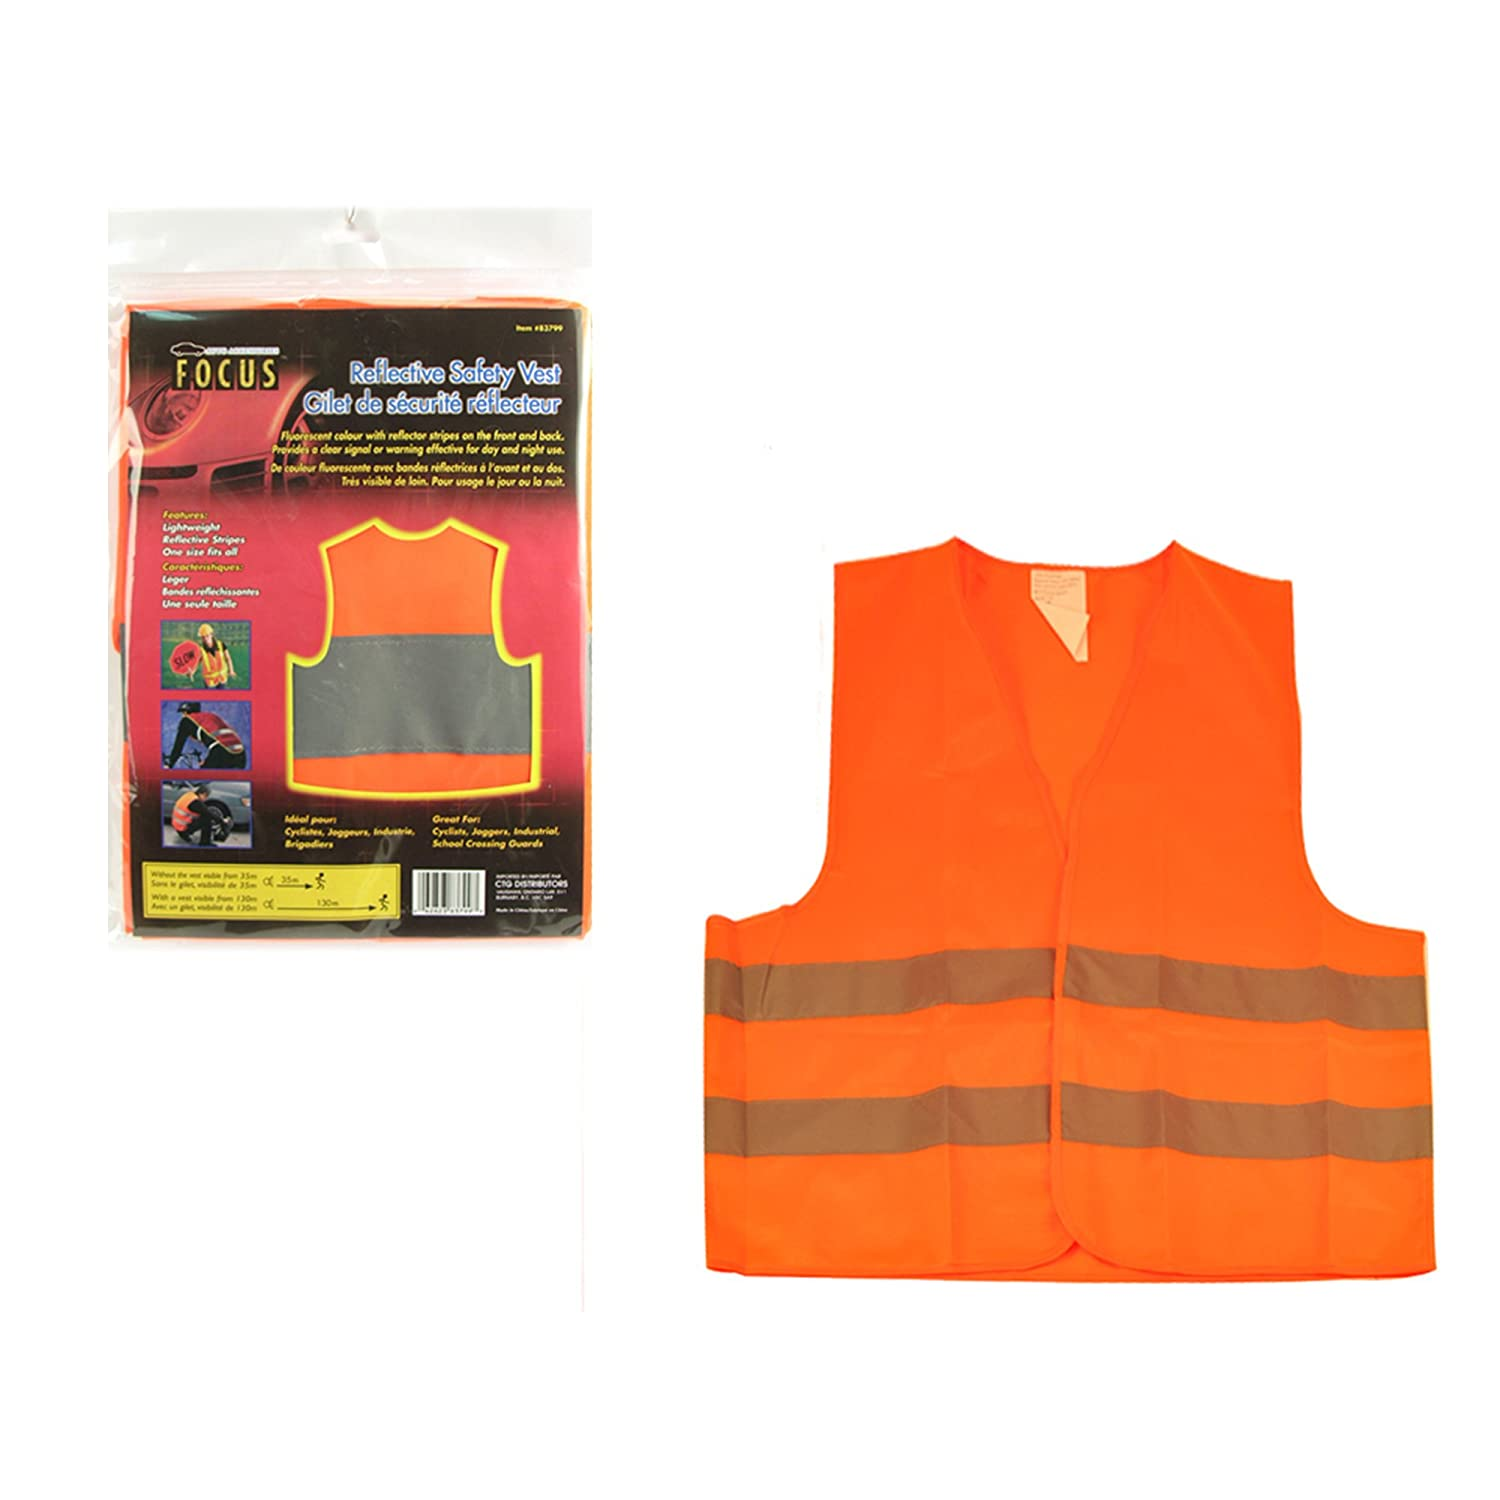 Focus Auto 83799 Reflective Safety Vest